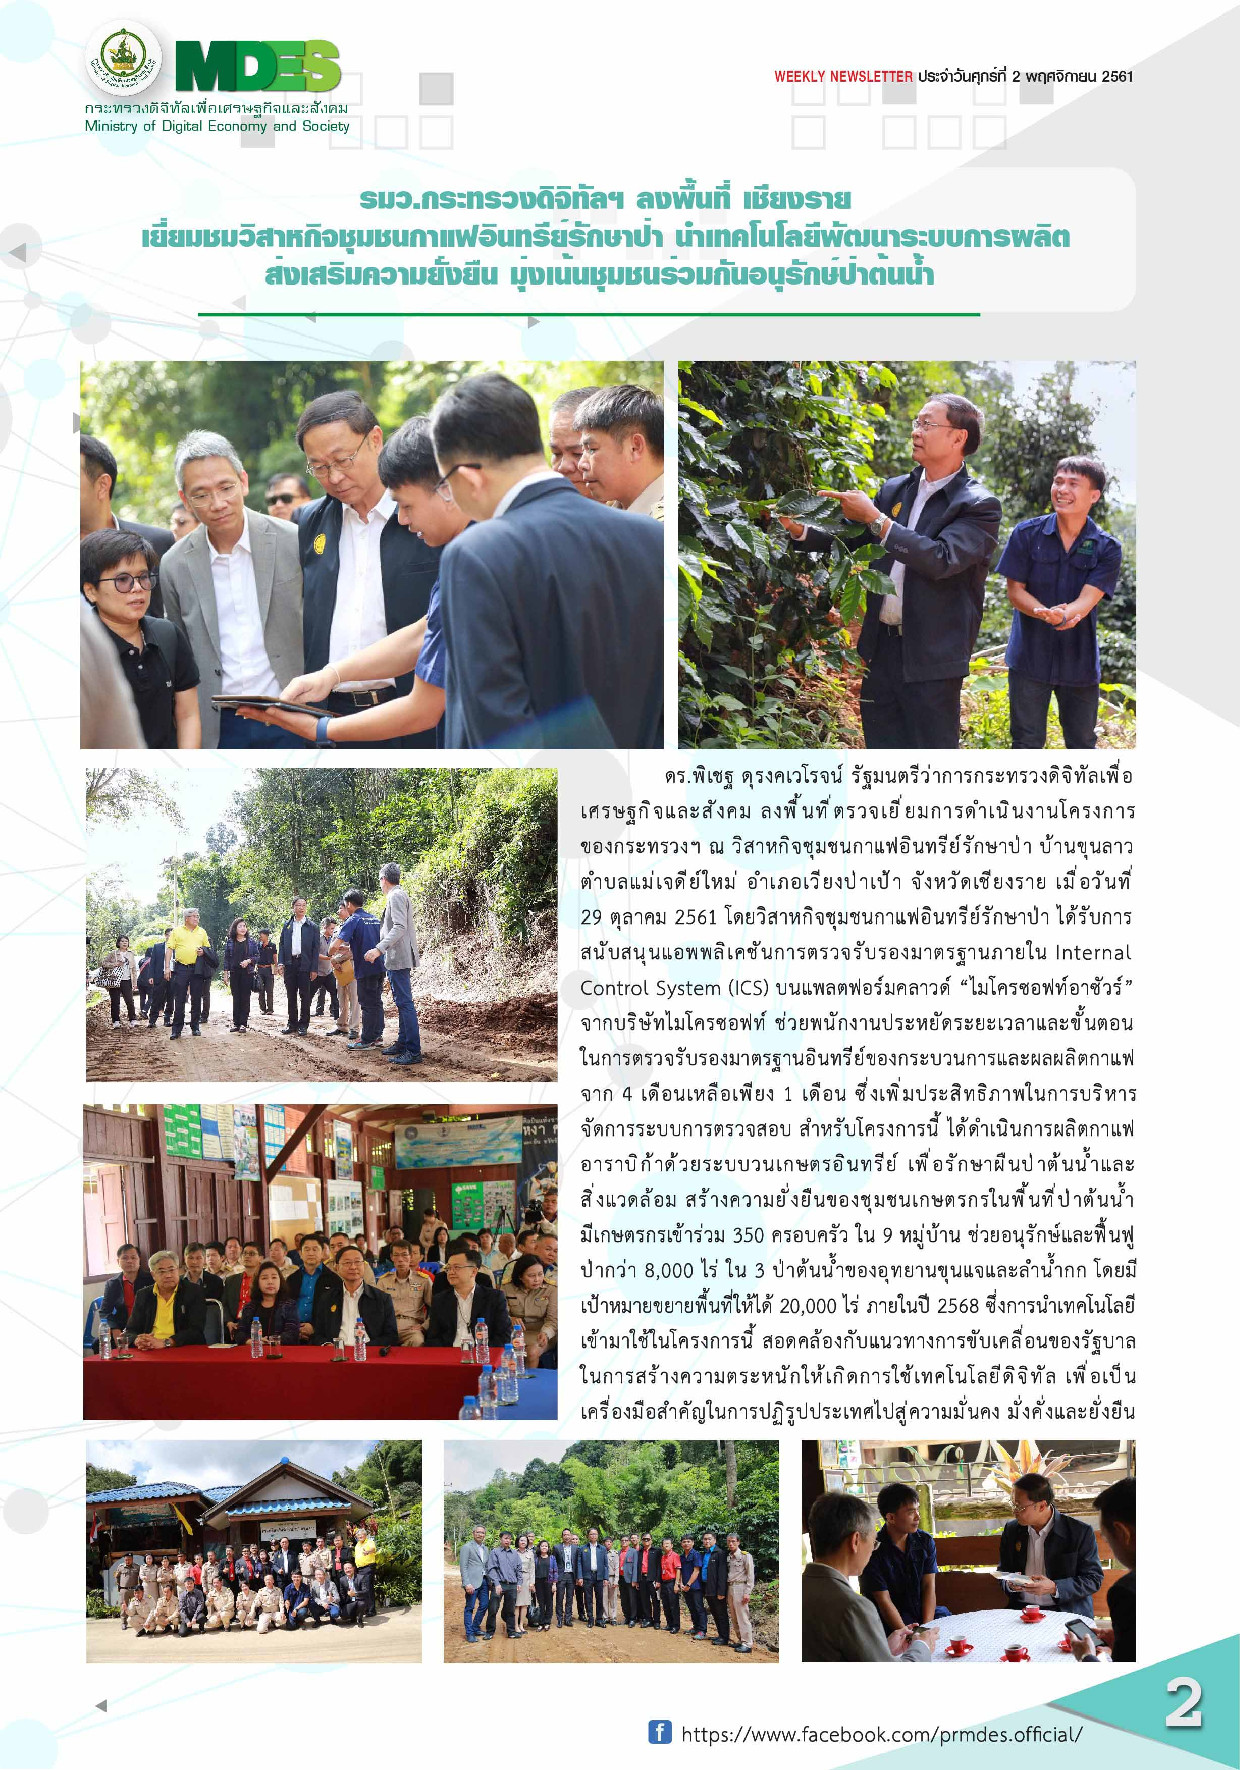 611102 WeeklyNewsletter p002